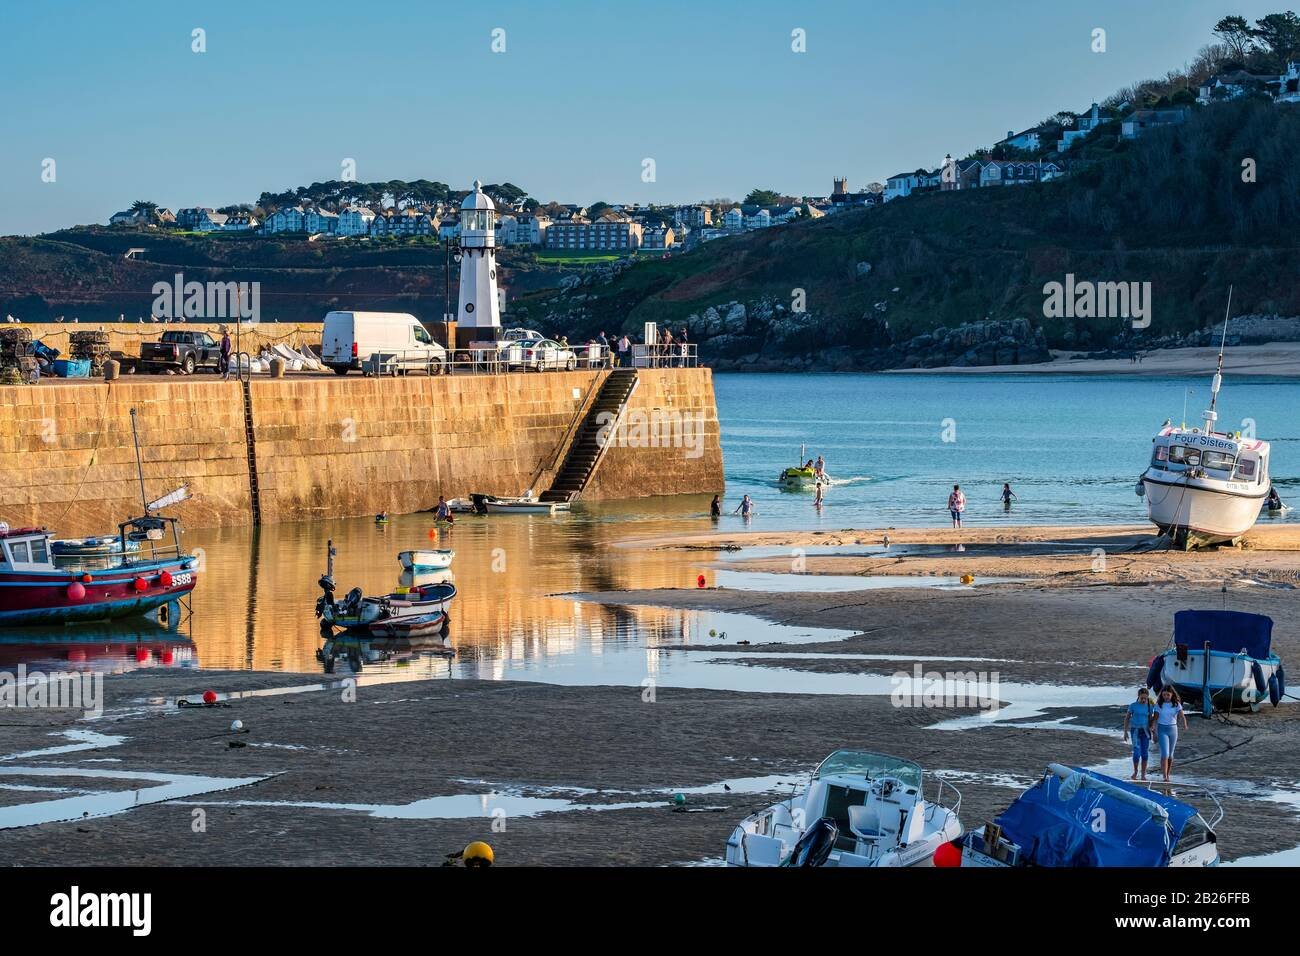 St Ives Harbour beach, with boats in the harbour with Smeatons Pier and St Ives new lighthouse, blue skies, blue sea, Cornwall, South West, UK Stock Photo